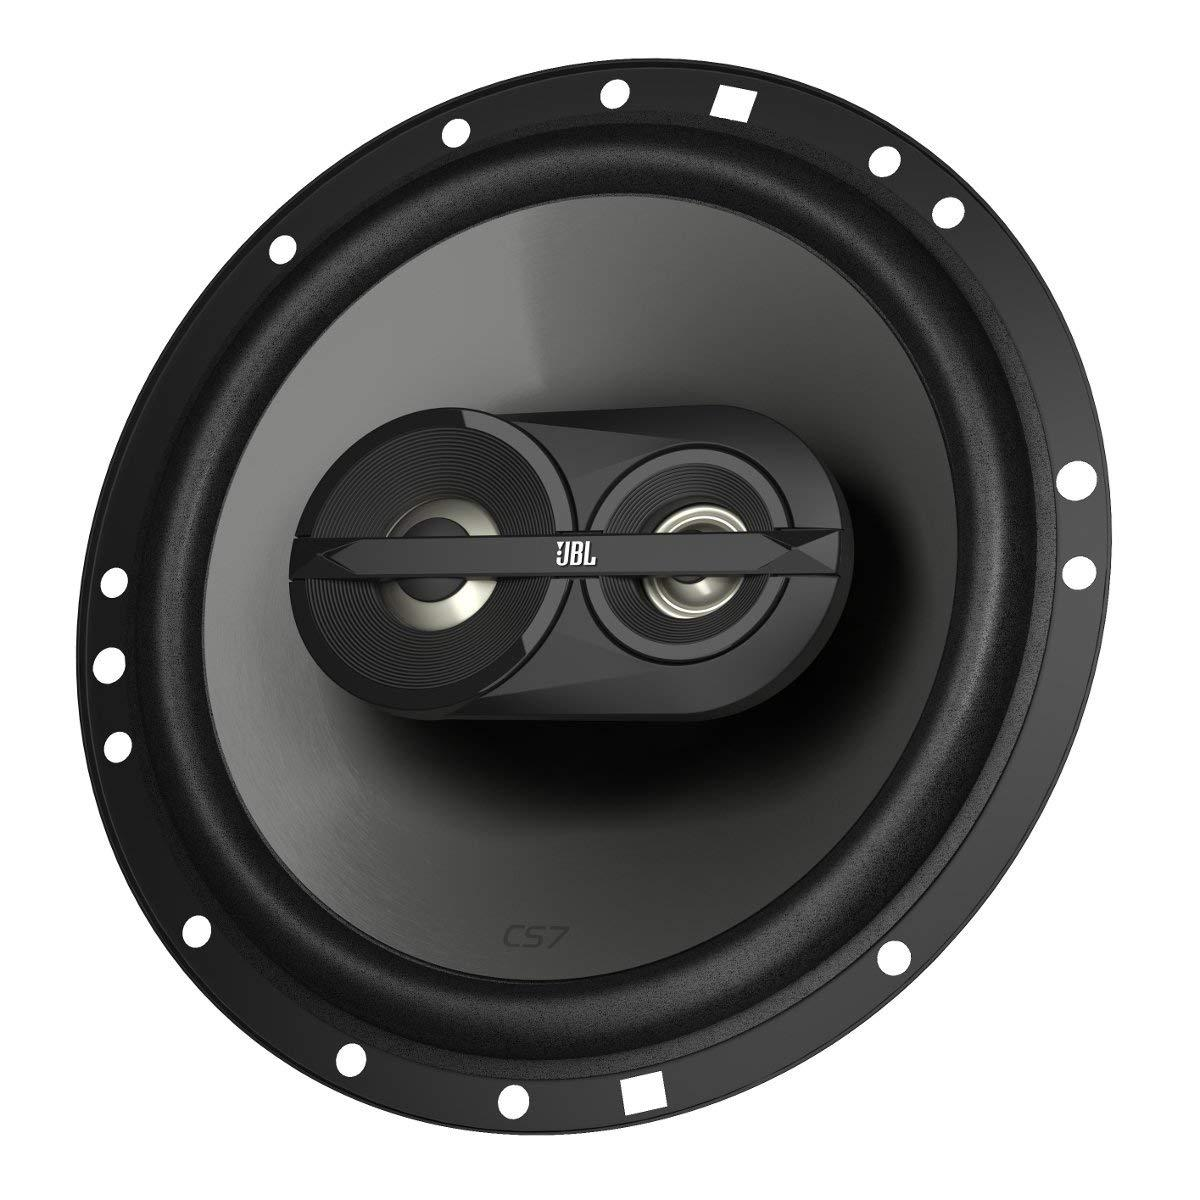 Car Audio For Sale Sound System Online Brands Prices Kicker Bass Station Wiring Harness Speakers